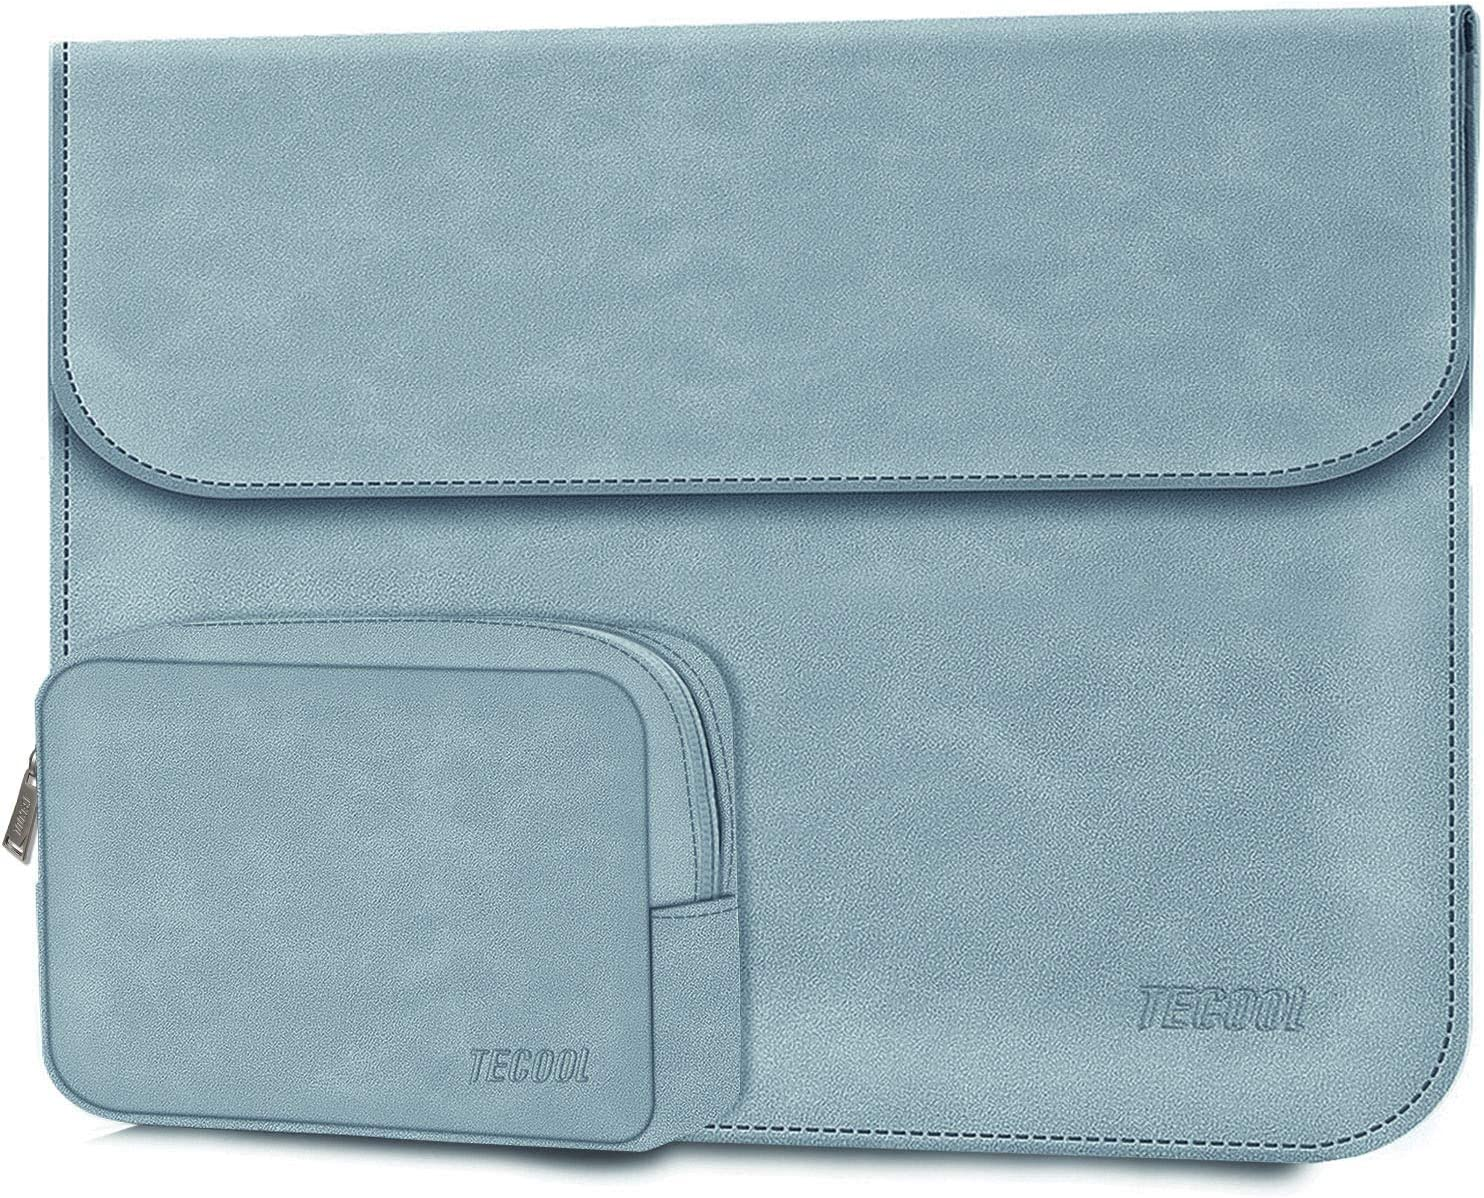 """TECOOL Laptop Sleeve Case with Accessory Pouch for New MacBook Air 13 w/Touch ID 2020 2019 2018 Model A2179/A1932, New iPad Pro 12.9"""", Surface Pro 7/6/X, Dell XPS 13, Faux Suede Leather Light Blue"""